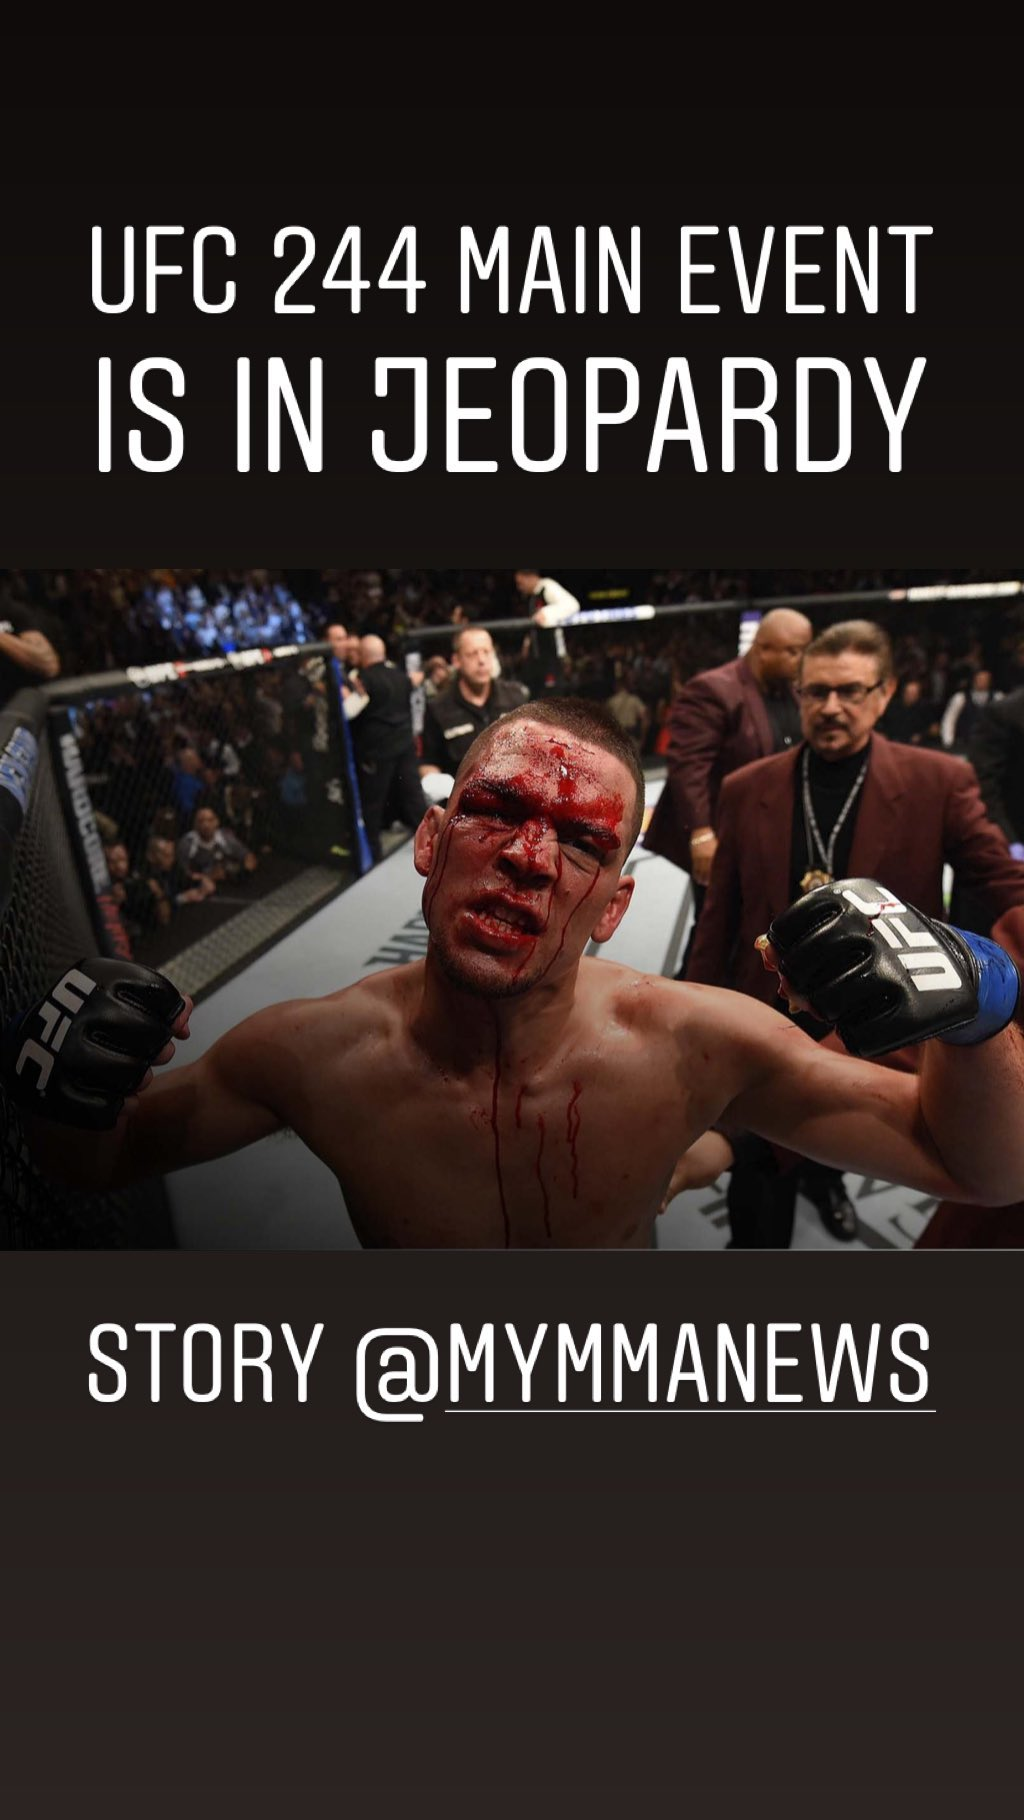 nate diaz says he is out of ufc 244